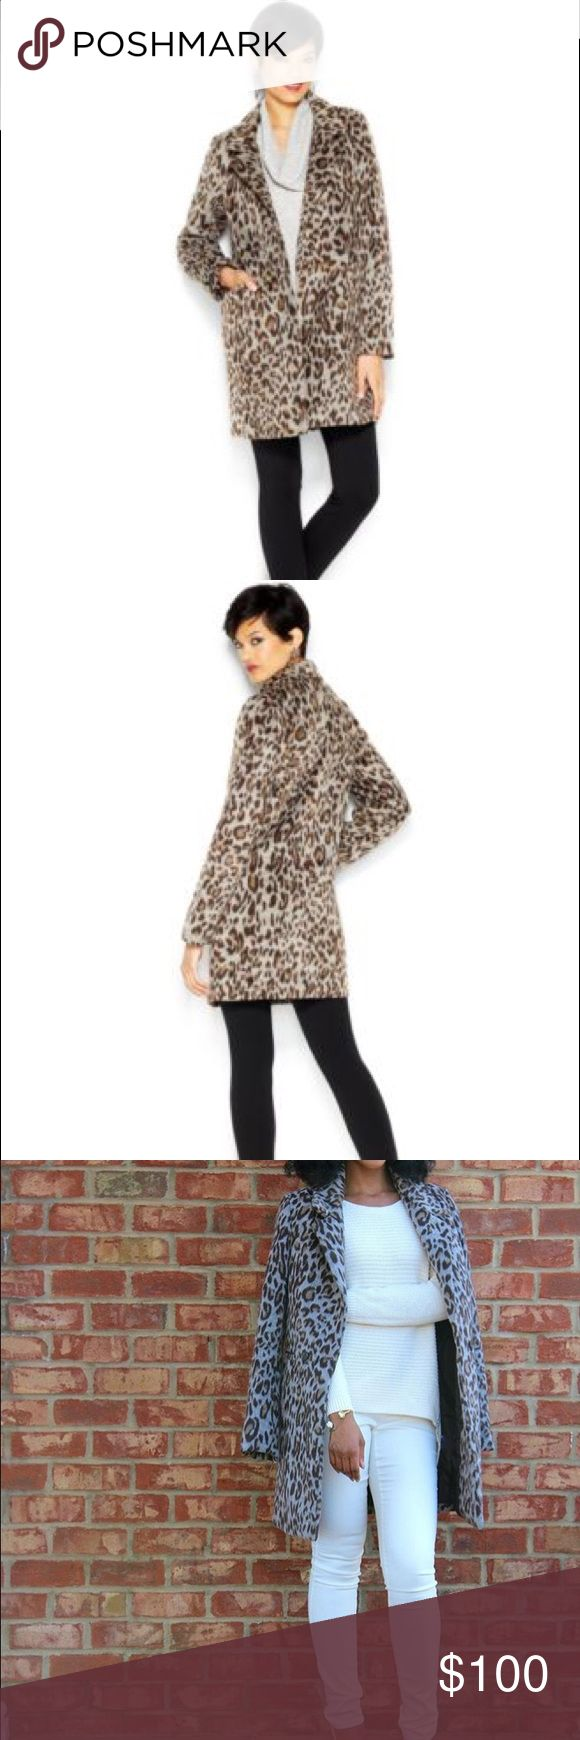 FAB Gray and Brown Leopard Print Coat! Worn once! FAB Gray and Brown Leopard Print Coat! Worn once, like new condition! Willing to negotiate, make me an offer! Bundle for a discount! 😊 Bar III Jackets & Coats